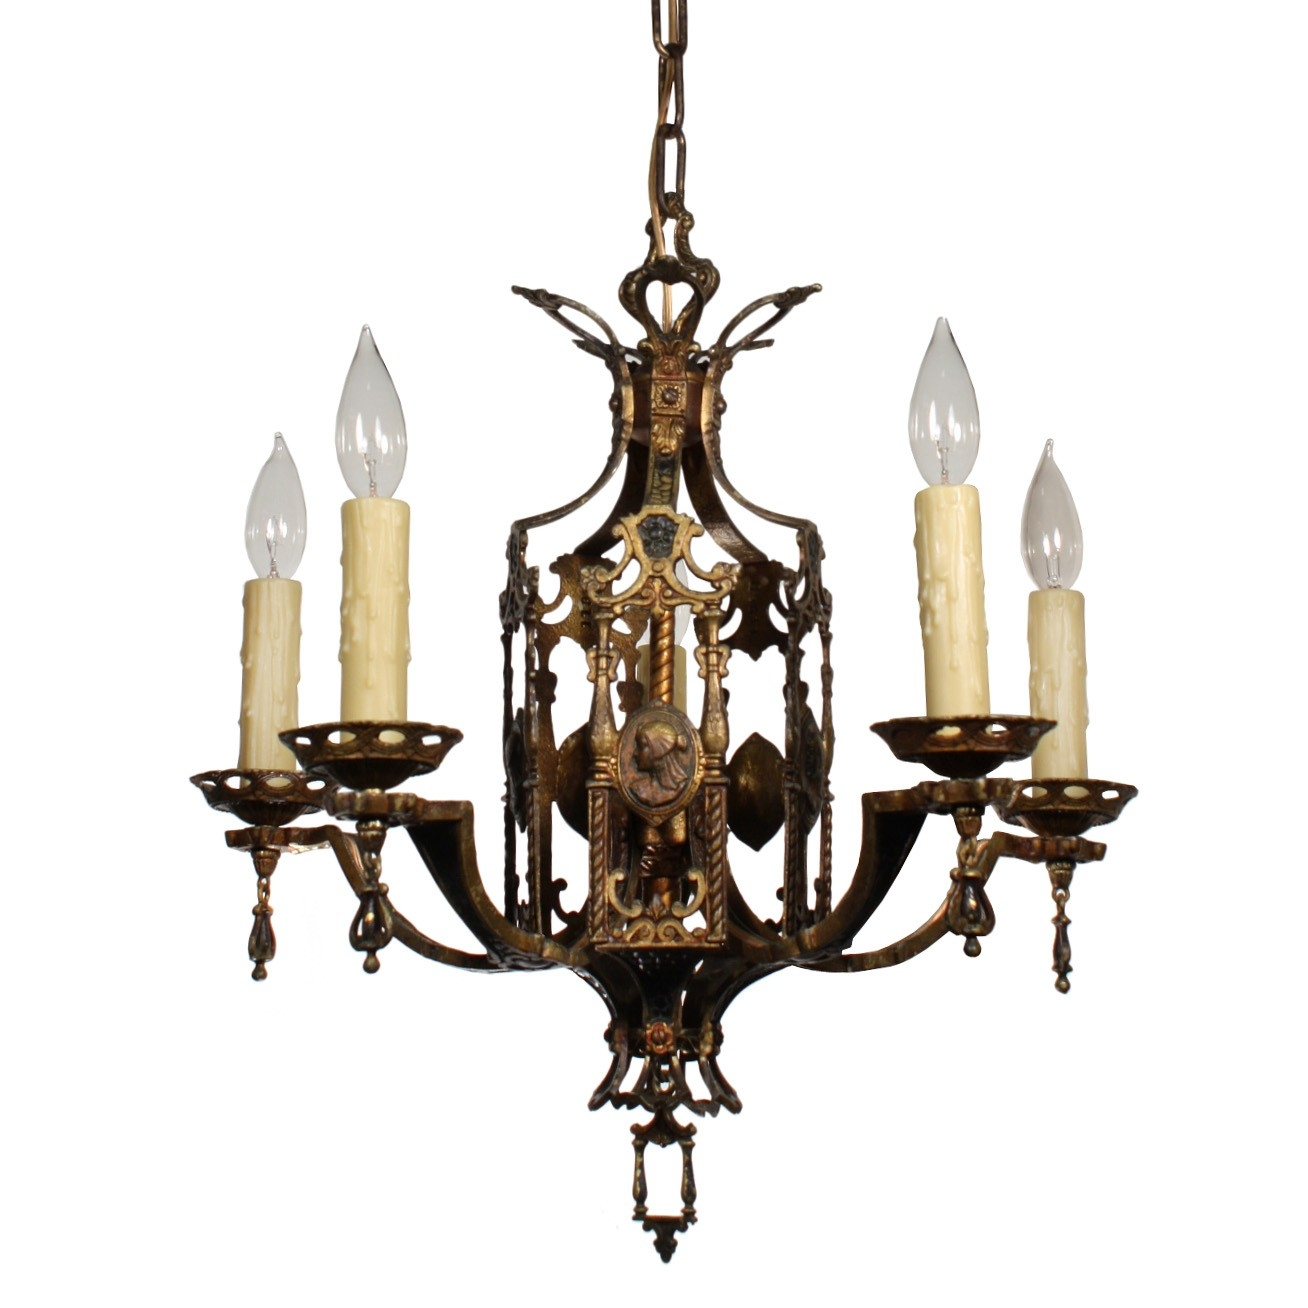 Stunning Antique Egyptian Revival Figural Chandelier With Cameos Pertaining To Egyptian Chandelier (#12 of 12)